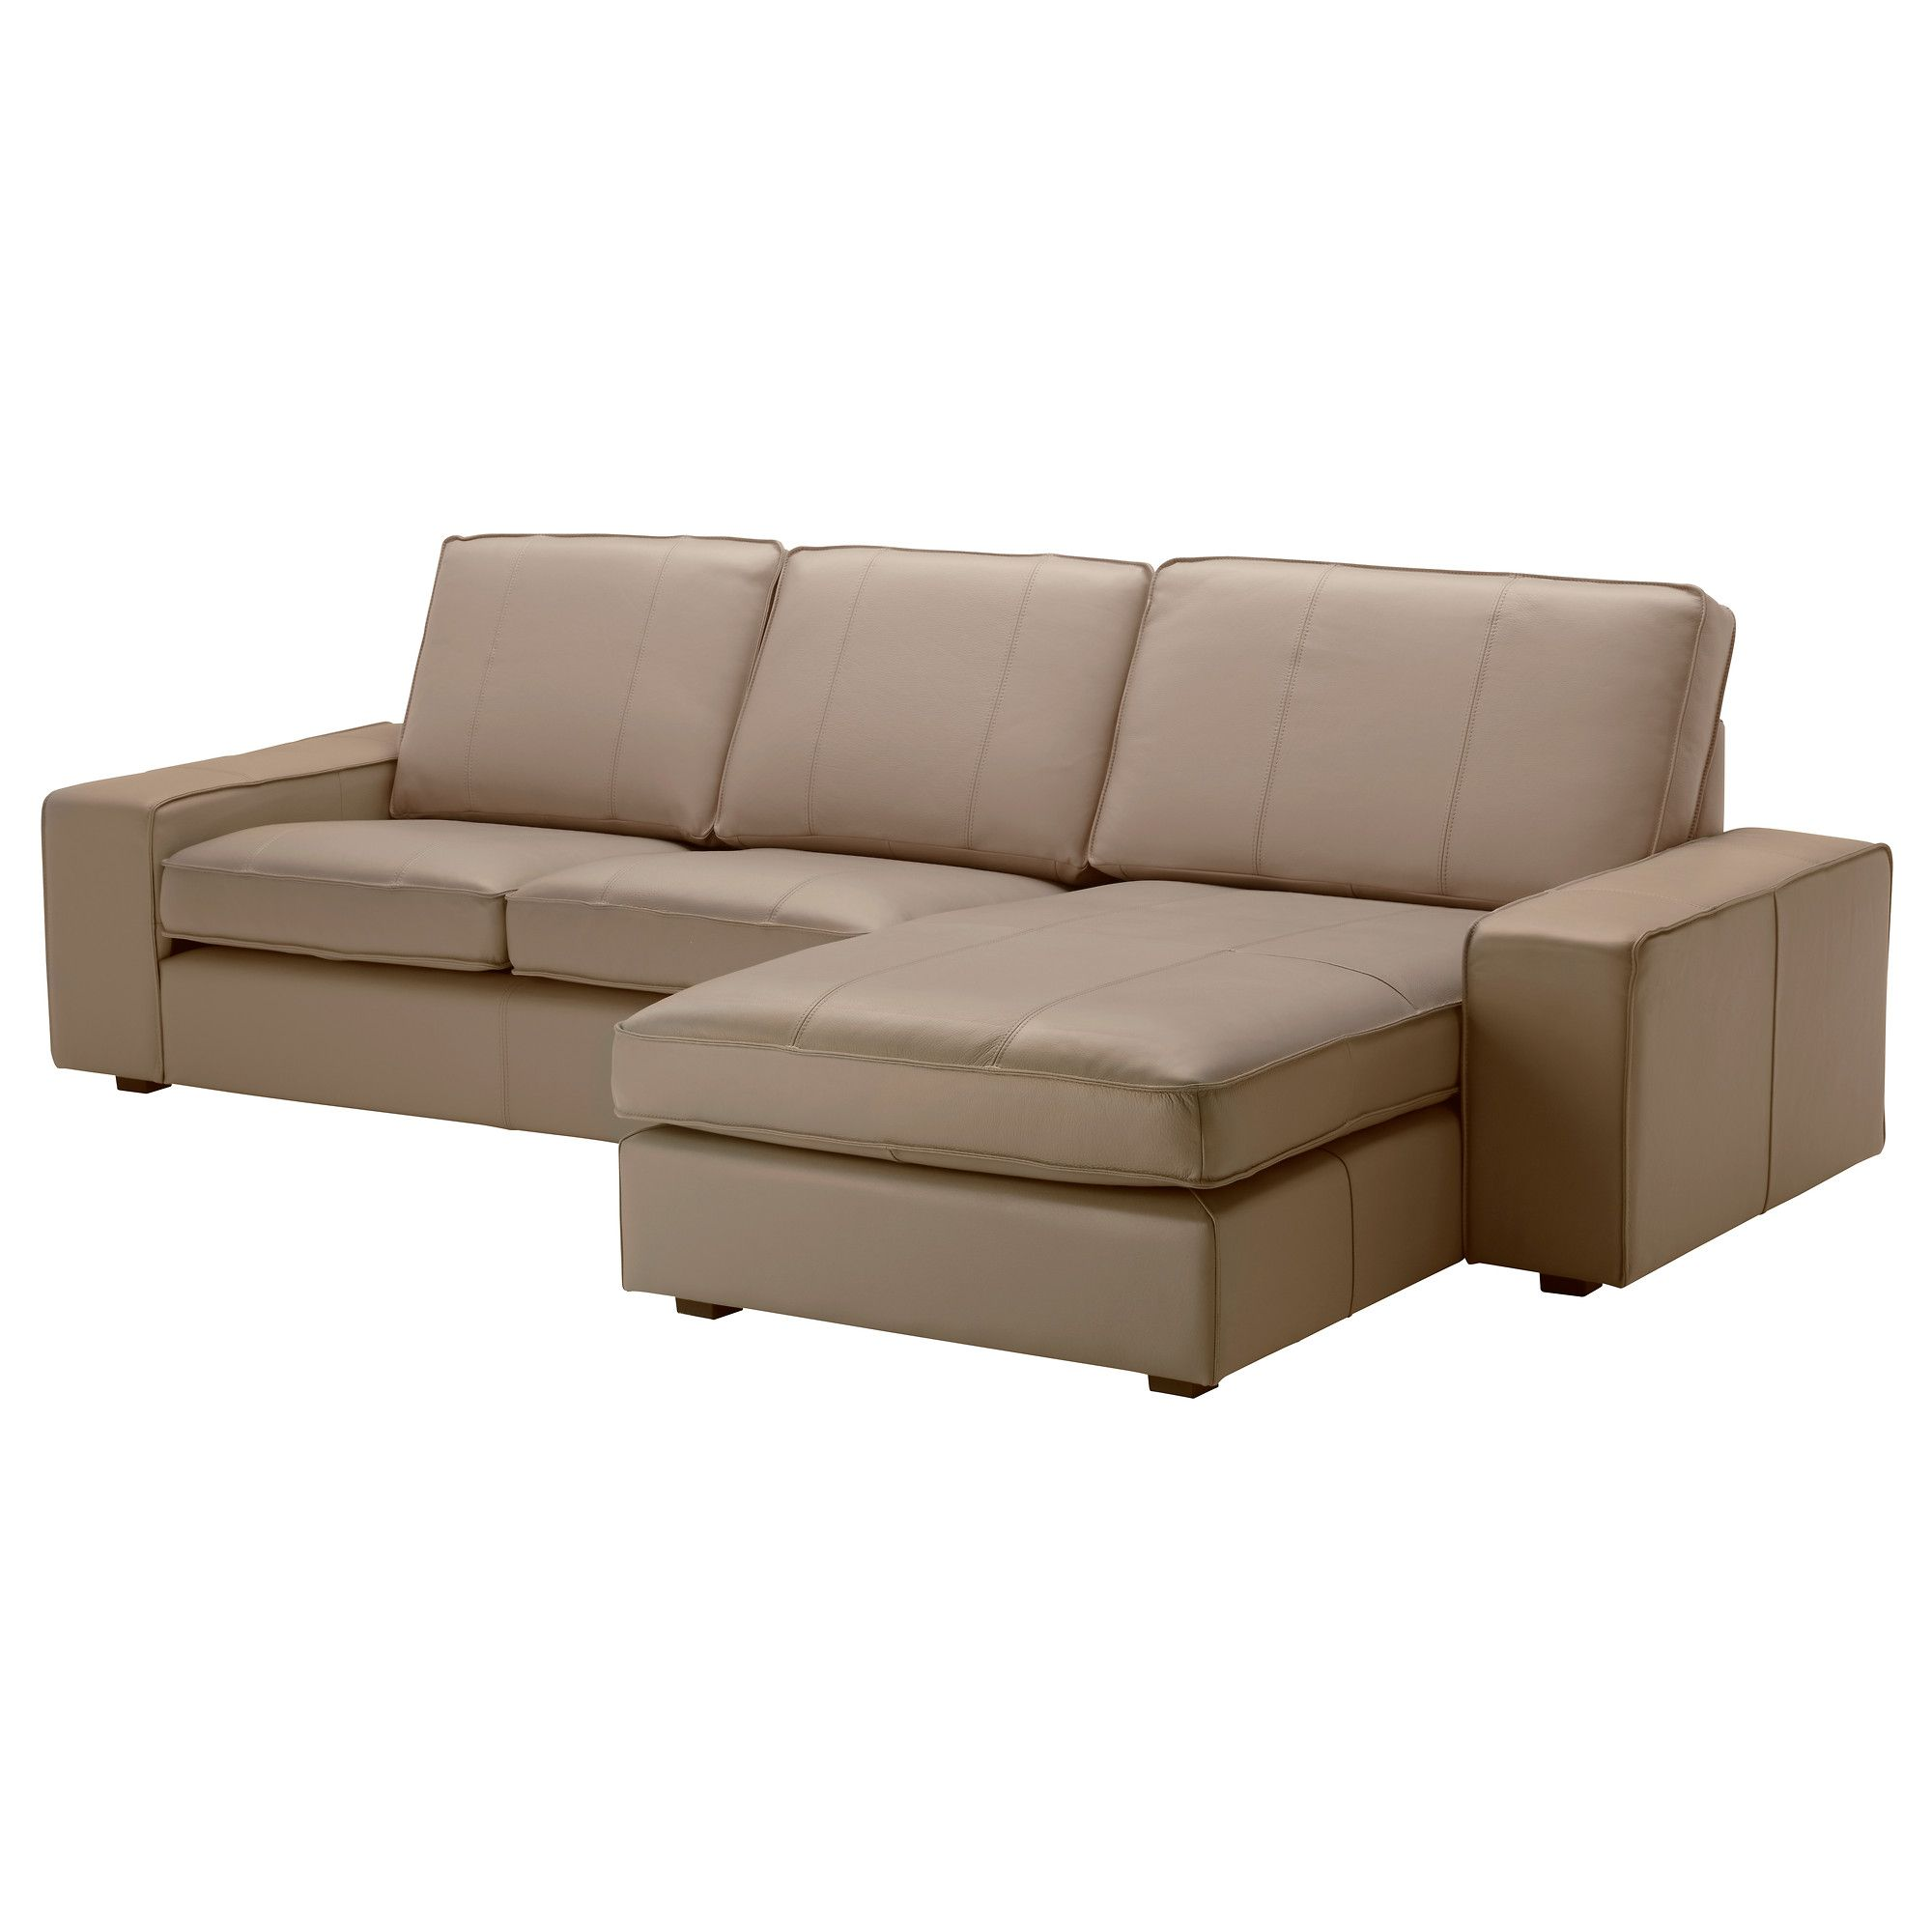 Kivik Sessel Ikea Kivik Loveseat And Chaise Lounge Grann Beige A Lighter